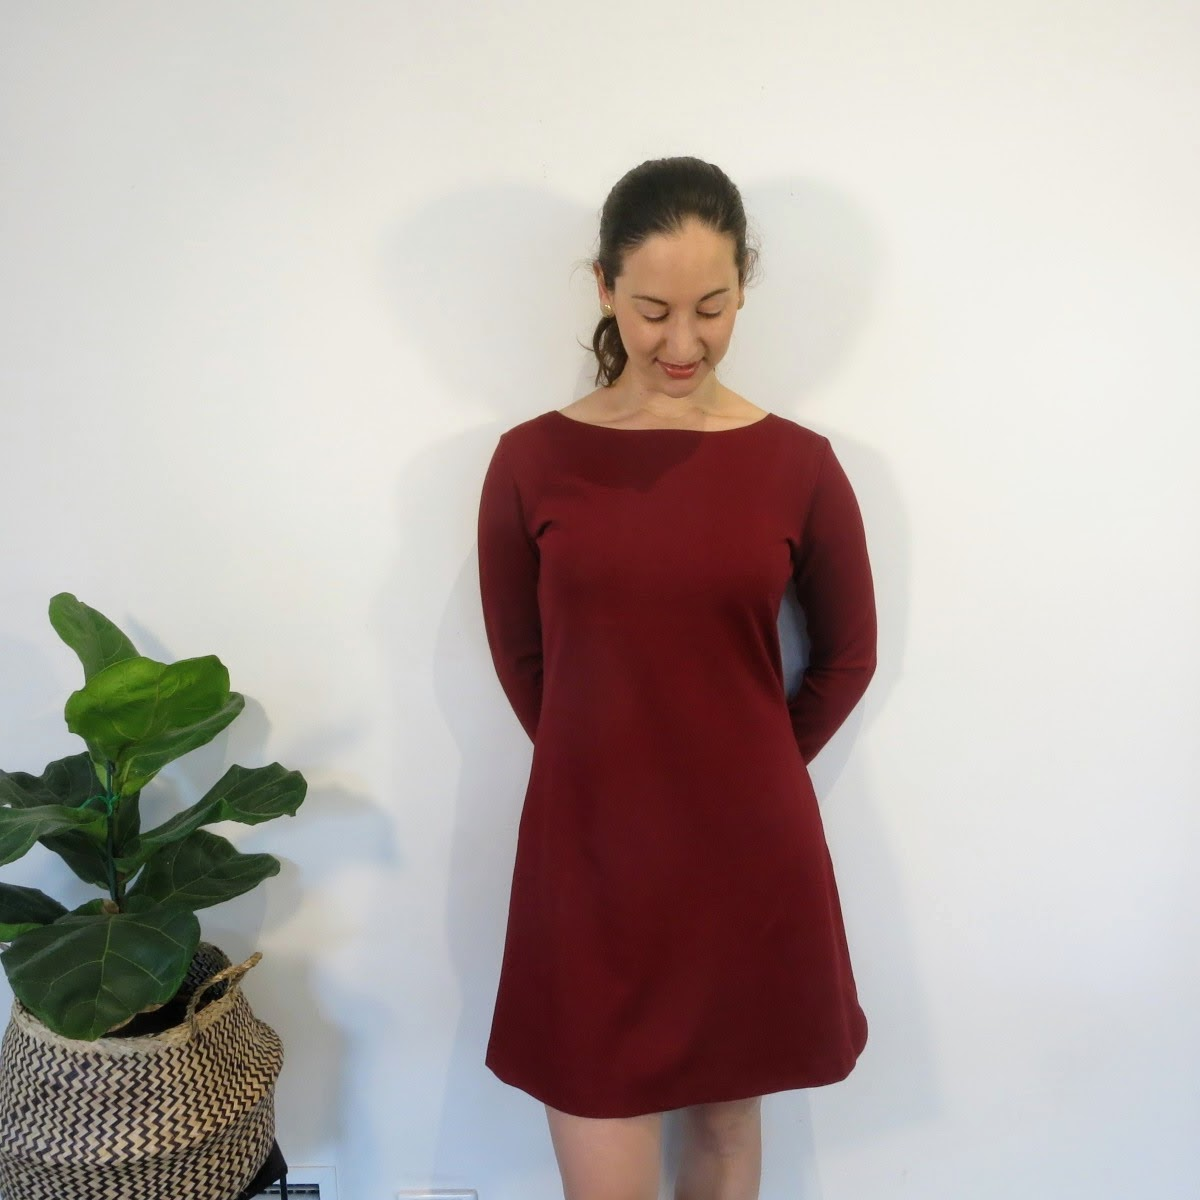 Coco Dress by Tilly and the Buttons